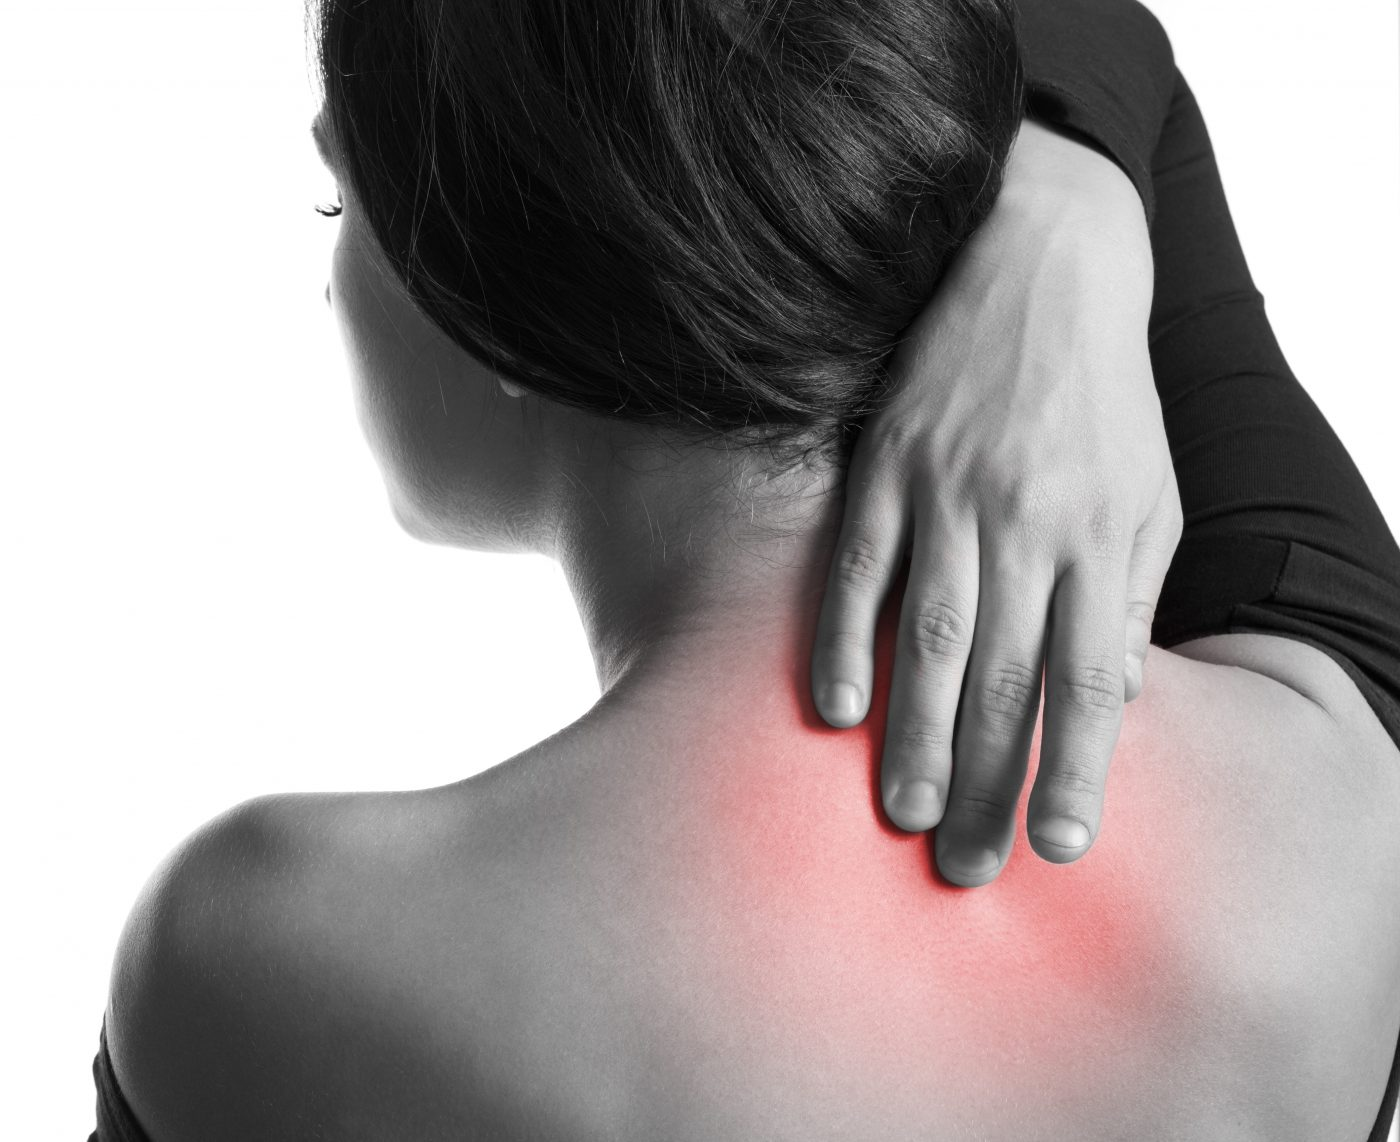 Whiplash an Unlikely Cause of Fibromyalgia, Study Shows